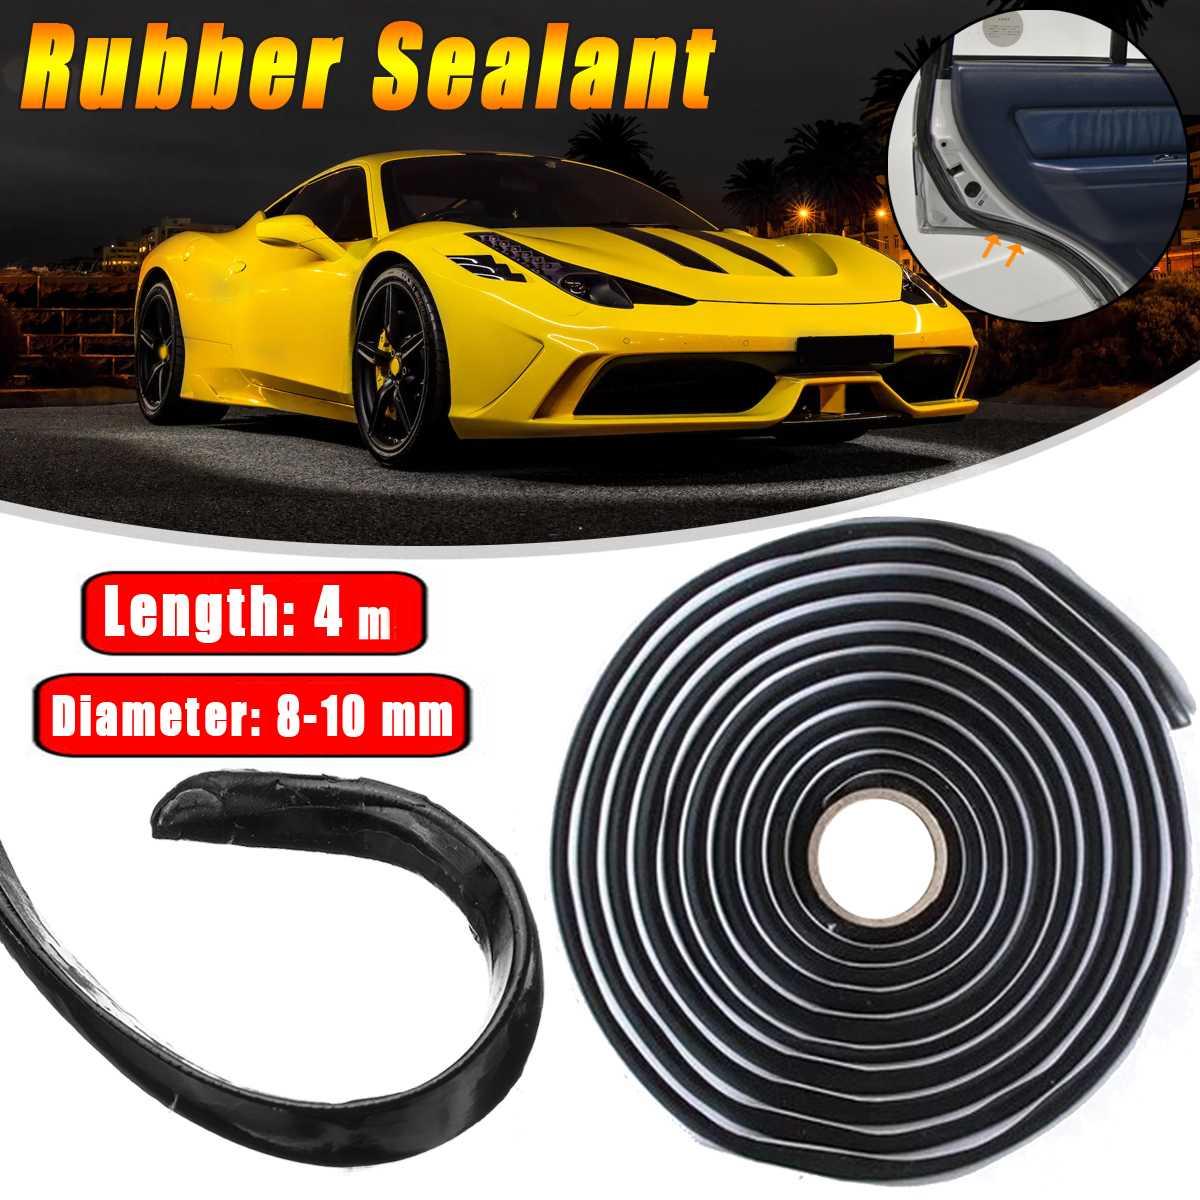 2x Car Rubber Sealant 4 Meters Butyl Glue Headlight Windshield Retrofit Reseal Hid Headlamps Taillig